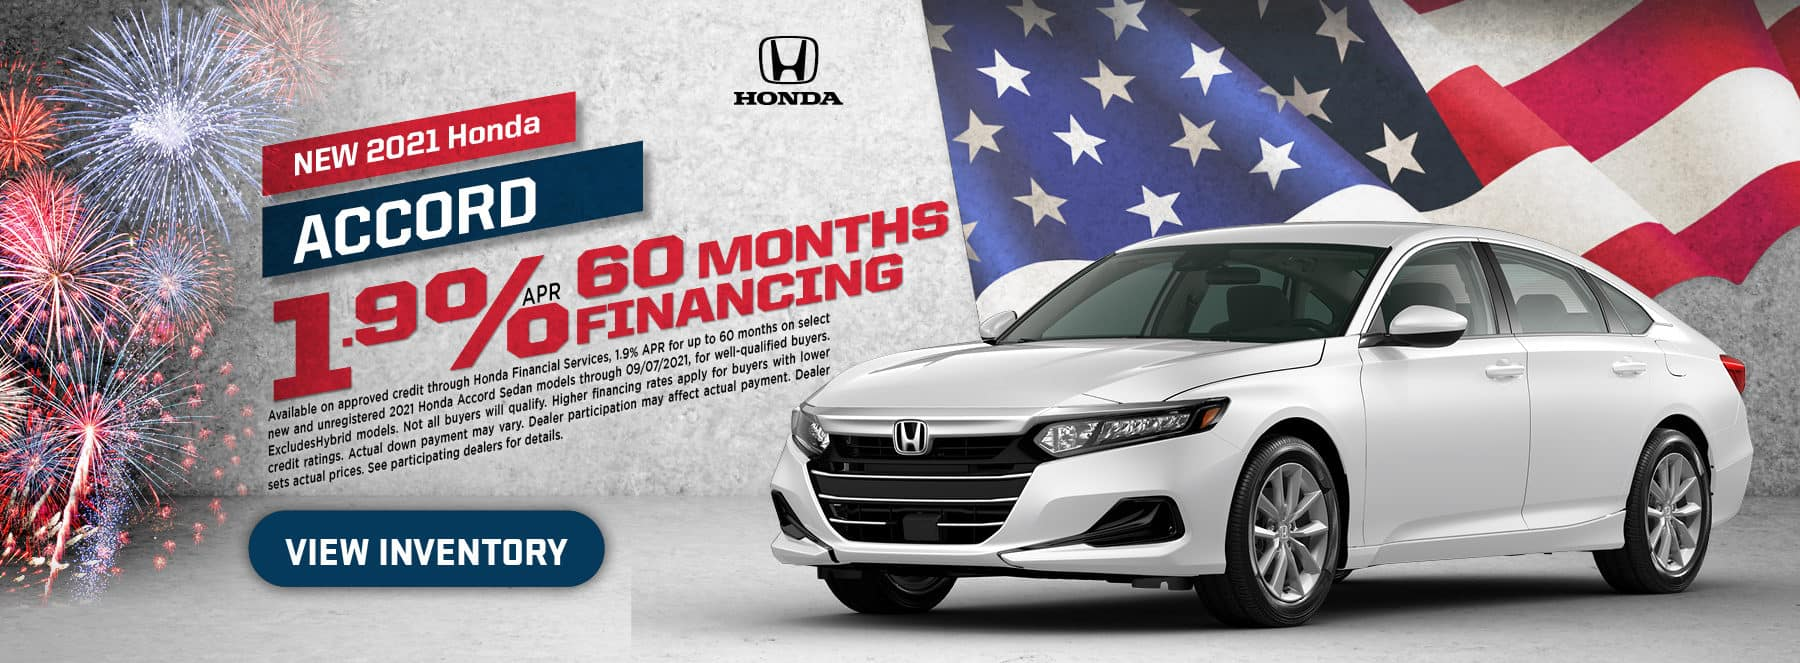 2021 Accord – 1.9% for 60 months